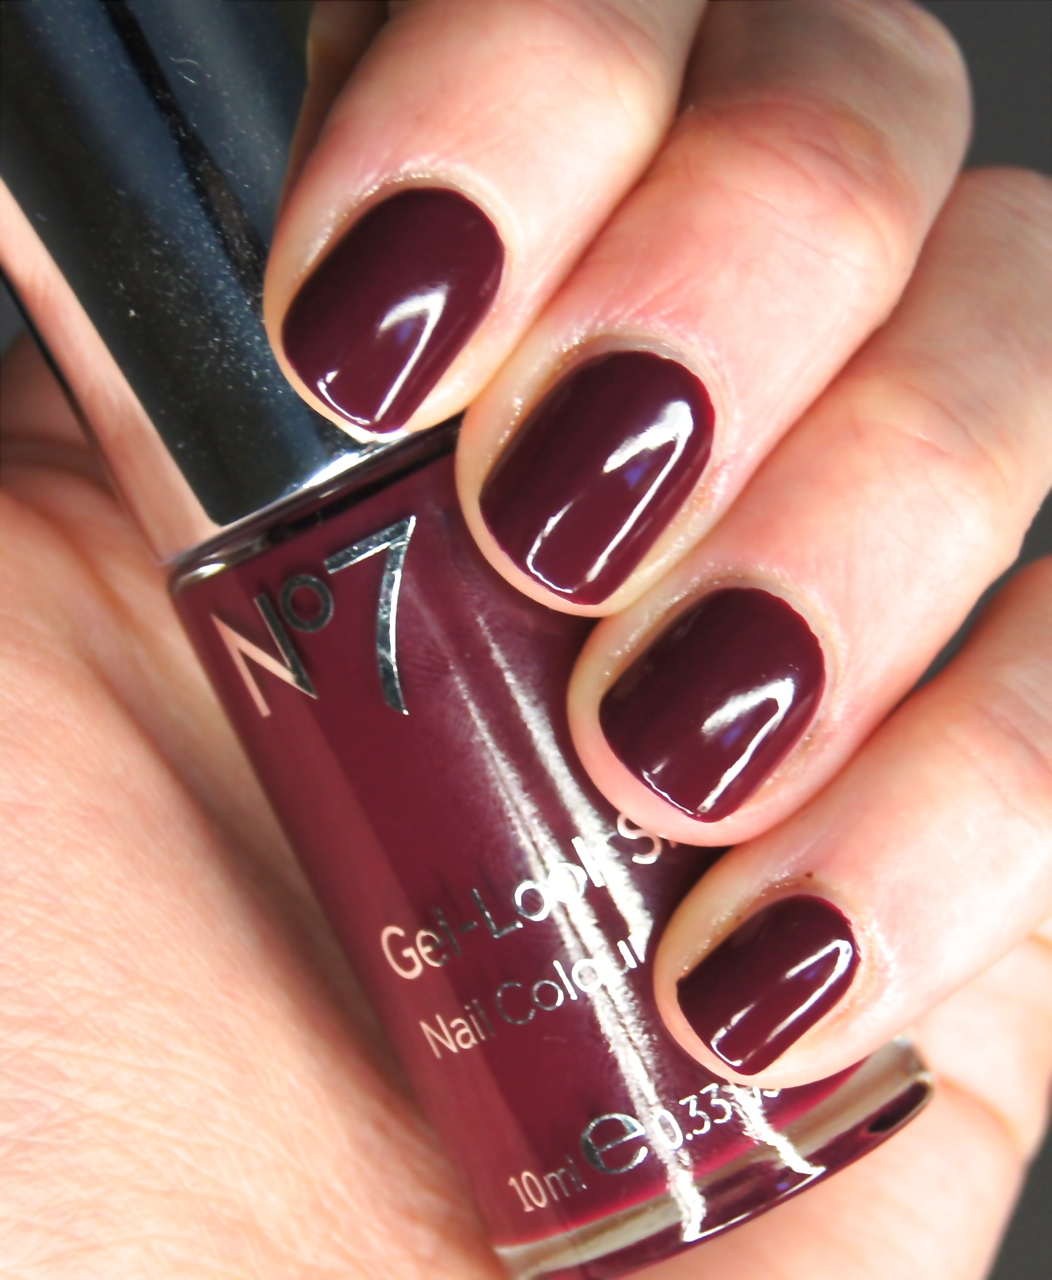 no7 gel look high shine nail colour deep wine swatch review